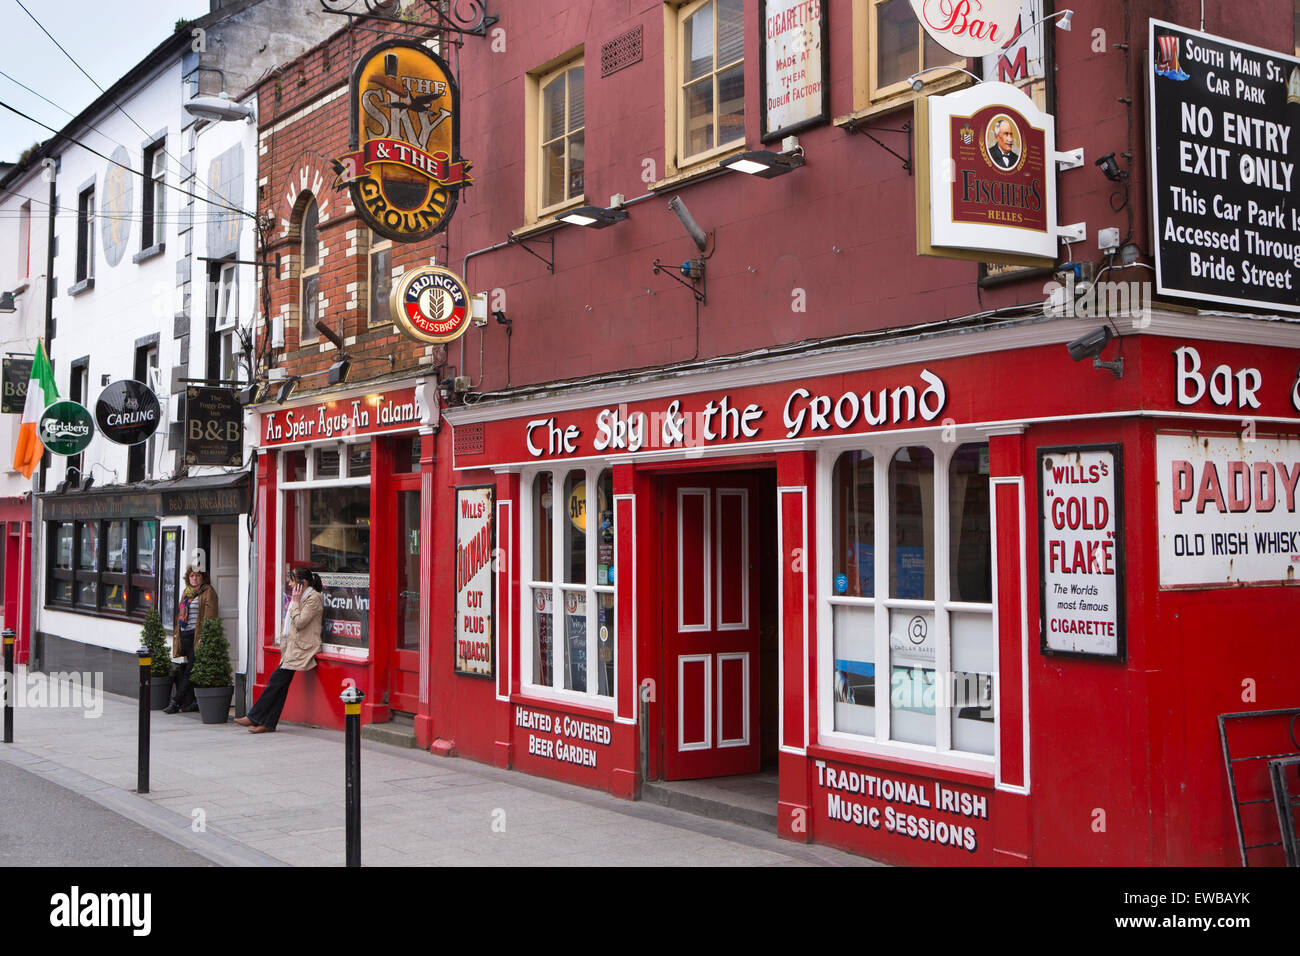 Ireland, Co Wexford, Wexford Town, Main Street South, red painted The Sky & the Ground bar - Stock Image